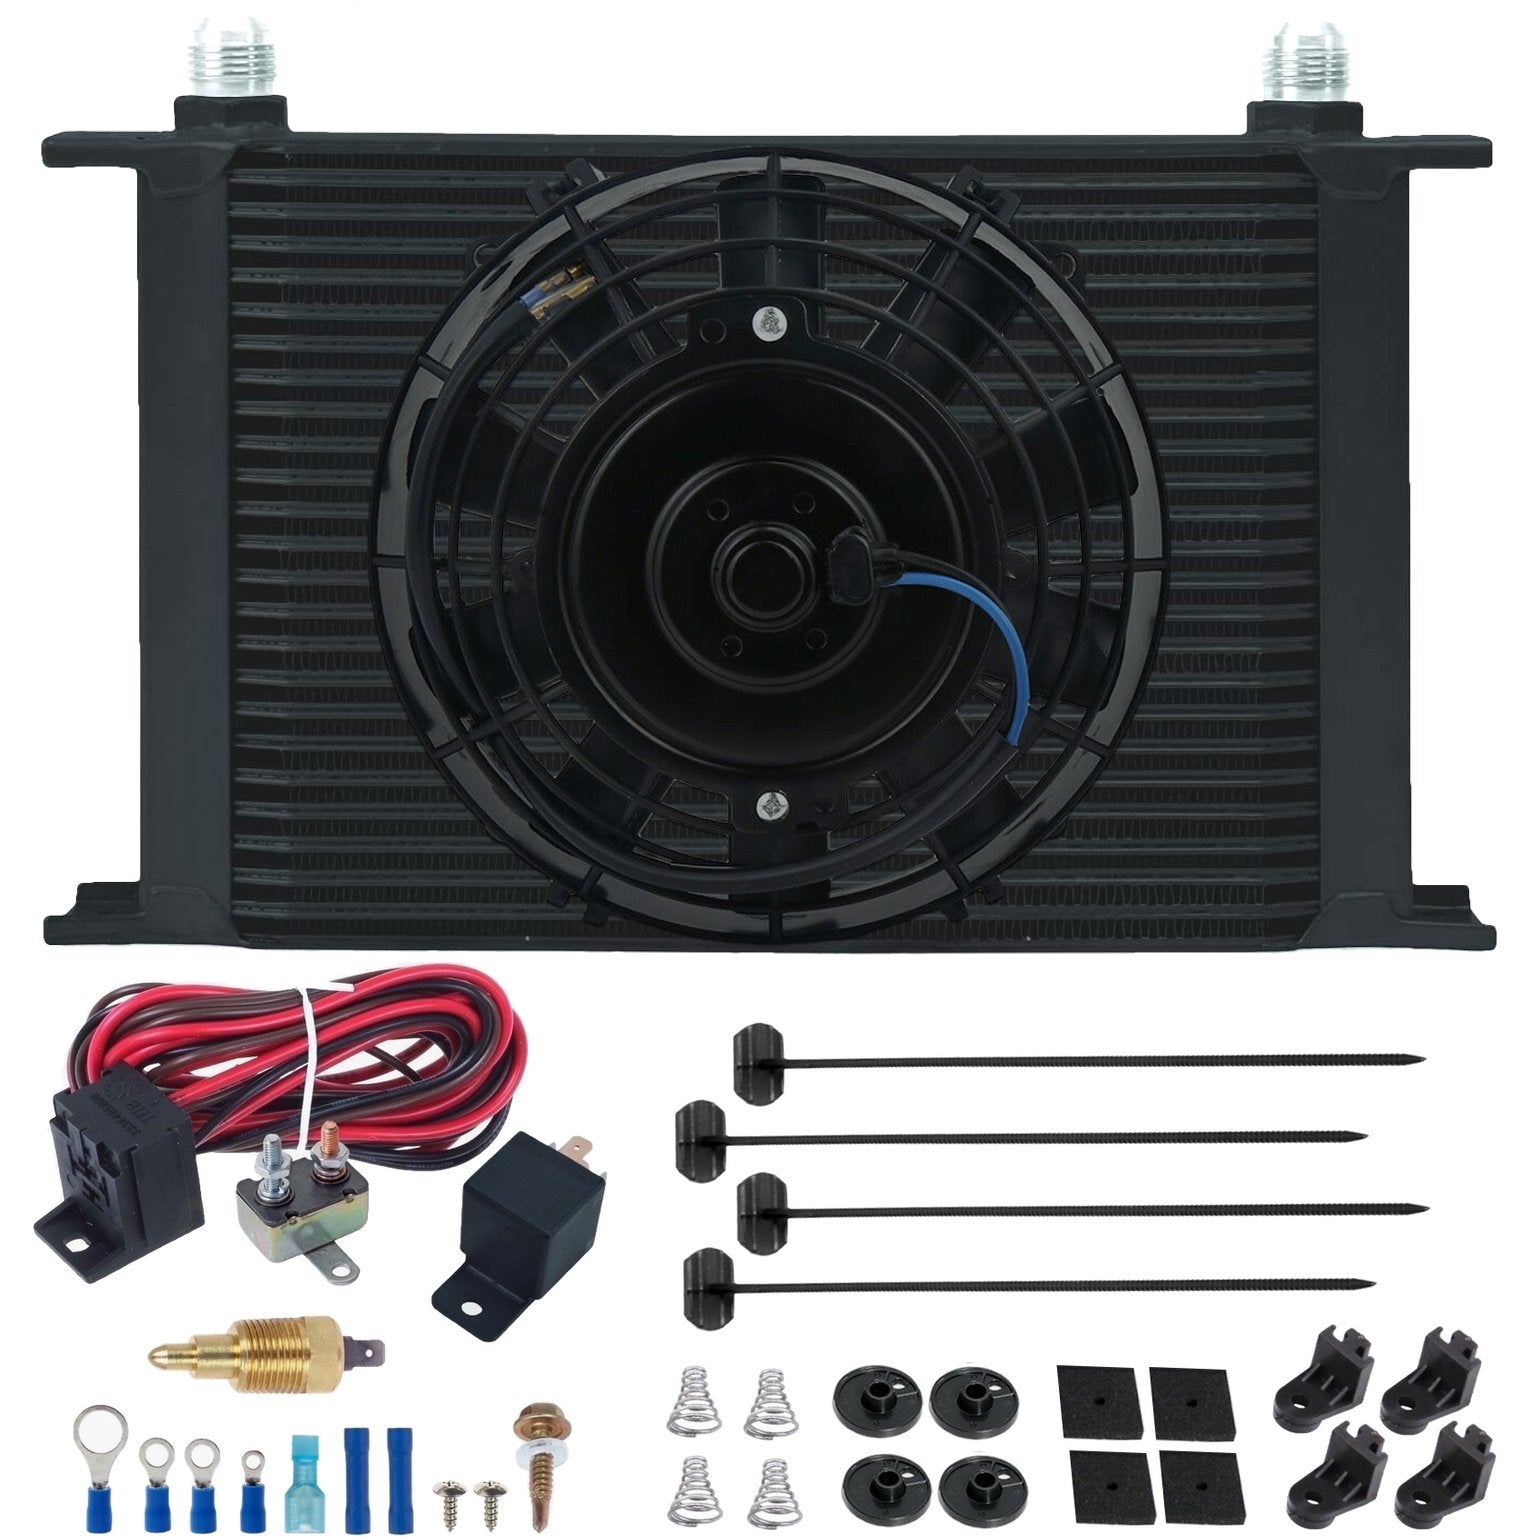 "25 Row Engine Transmission Oil Cooler 6"" Inch Electric Fan 12 Volt Engine Cooling Thread-In Grounding Thermostat Switch Kit-Oil Cooler-American Volt-10AN-1/8"" NPT-140'F On - 125'F Off-American Volt"